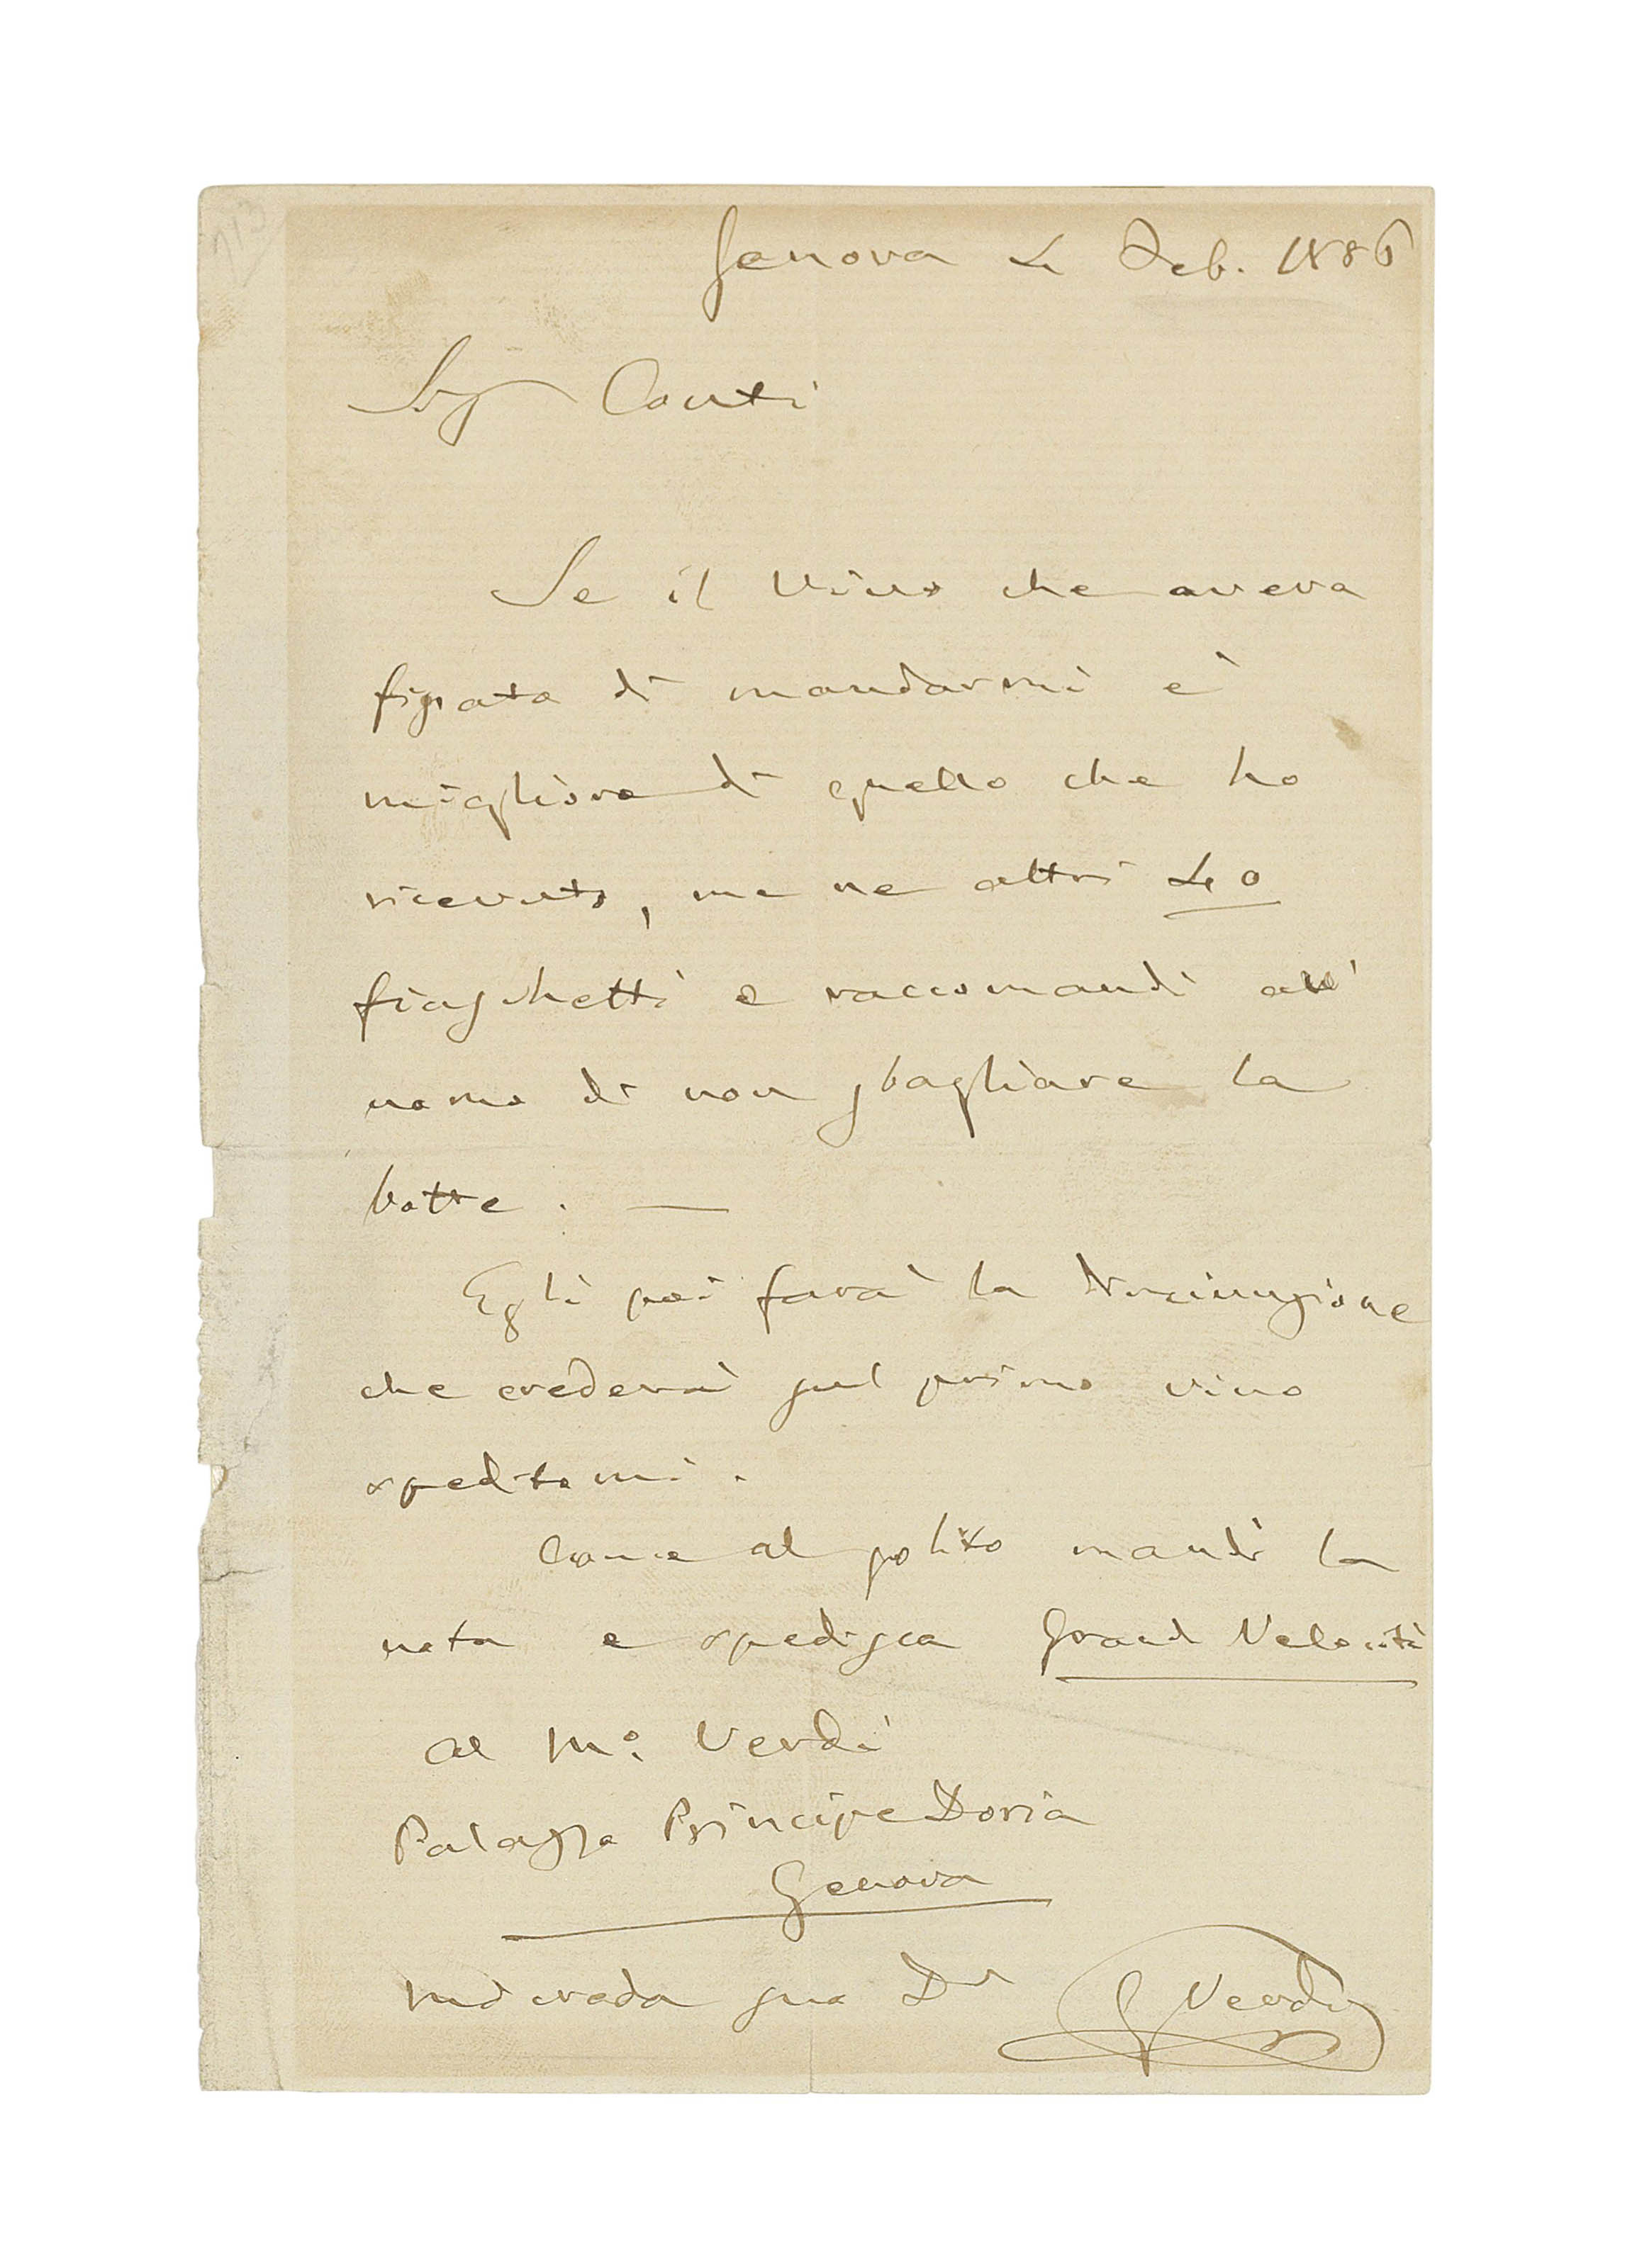 VERDI, Giuseppe (1813-1901). Autograph letter signed ('G. Verdi') to Pasquale Conti, Genoa, 4 February 1886, on a wine order, 'Se il vino che aveva fissato di mandarmi è migliore di quello che ho ricevuto, me ne altri 40 fiaschetti e raccomandi al' uomo di non sbagliare la botte' ('If the wine you had intended to send me is better than the one I received, [send] me another 40 bottles and tell the man not to mix up the barrels'), asking for it to be sent 'Grand Velocità', one page, 8vo (some yellowing where mounted, minor wear to left margin, traces of tape to verso); envelope.